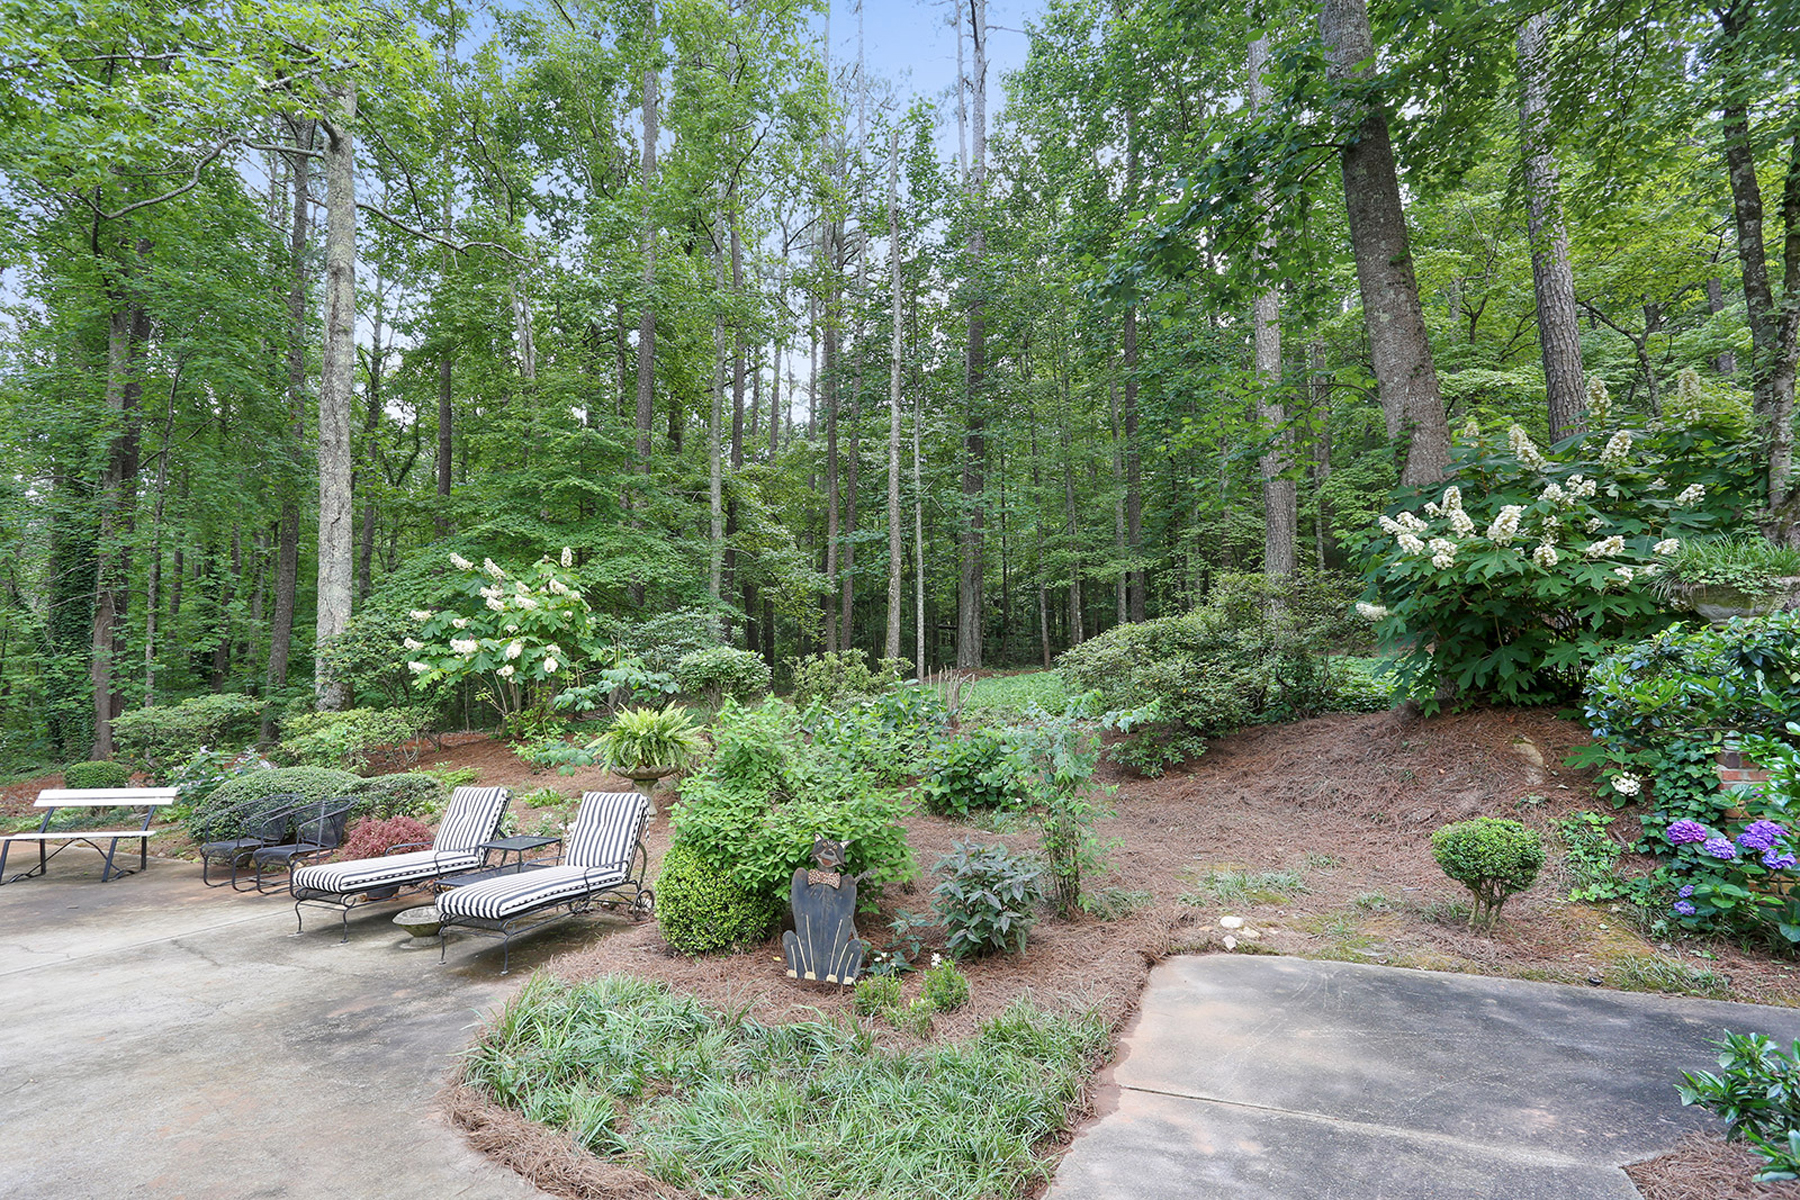 Additional photo for property listing at 12.8 Acres With House And Pond 4185 Old Stilesboro Road NW Kennesaw, ジョージア 30152 アメリカ合衆国